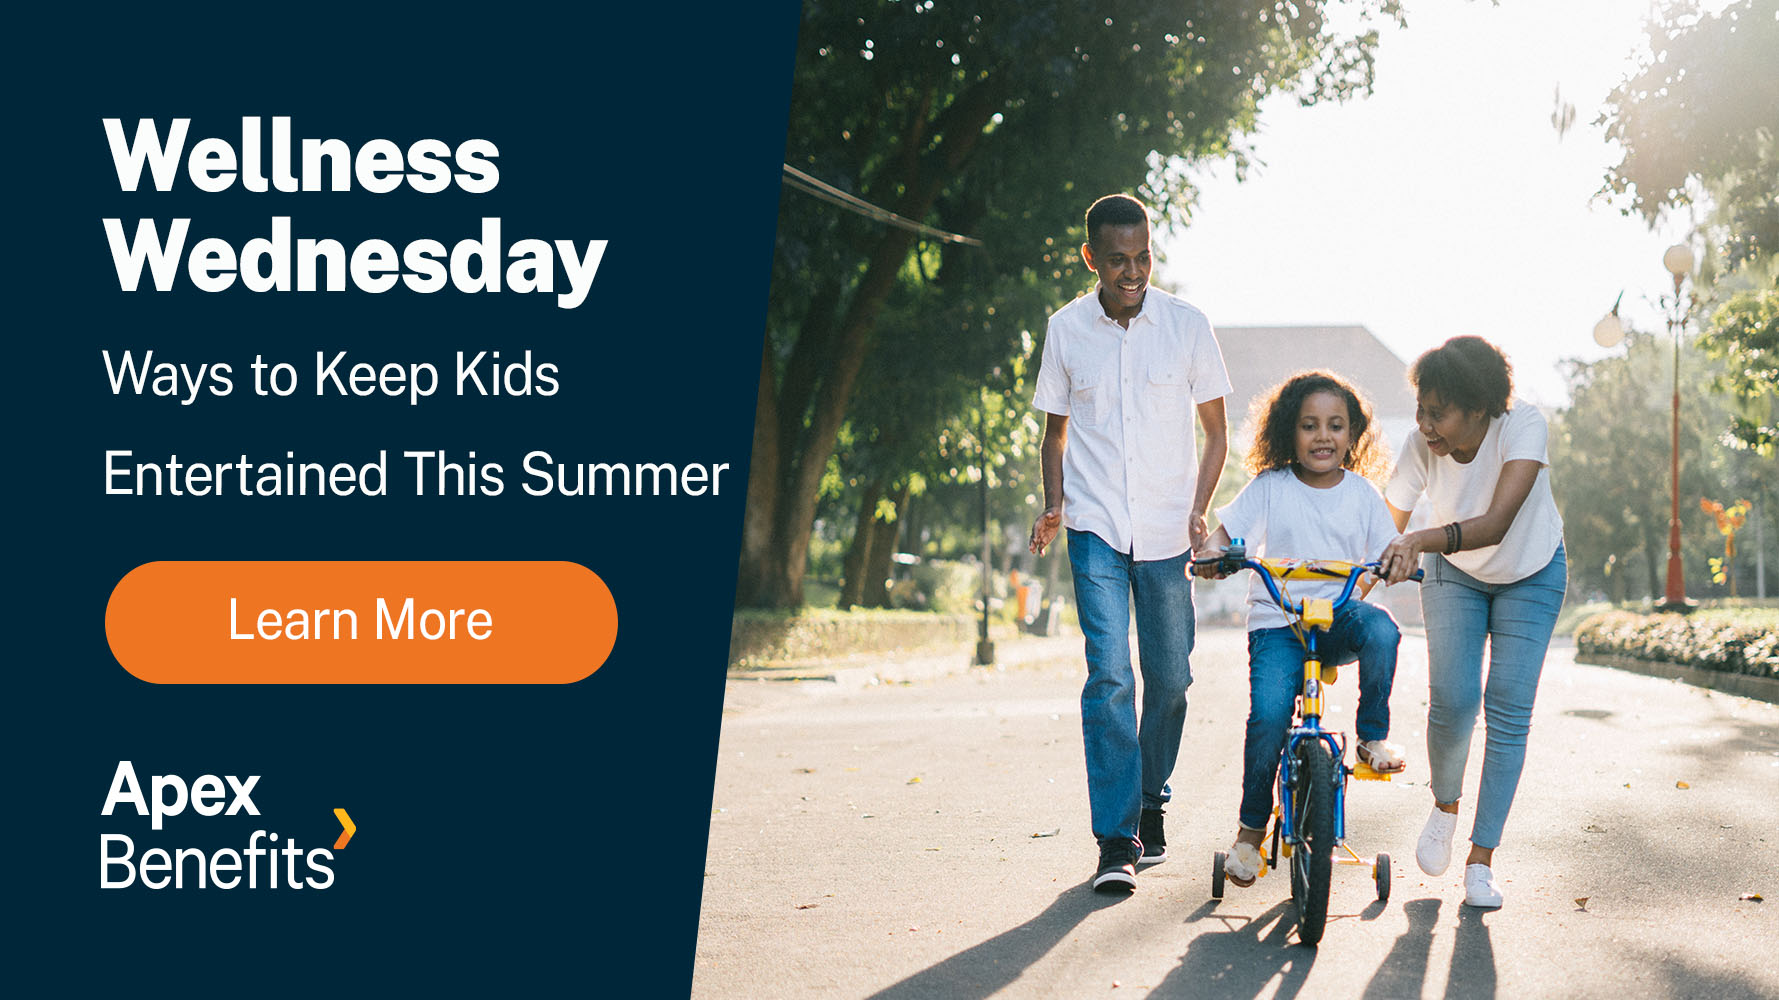 Wellness Wednesday: Ways to Keep Kids Entertained This Summer